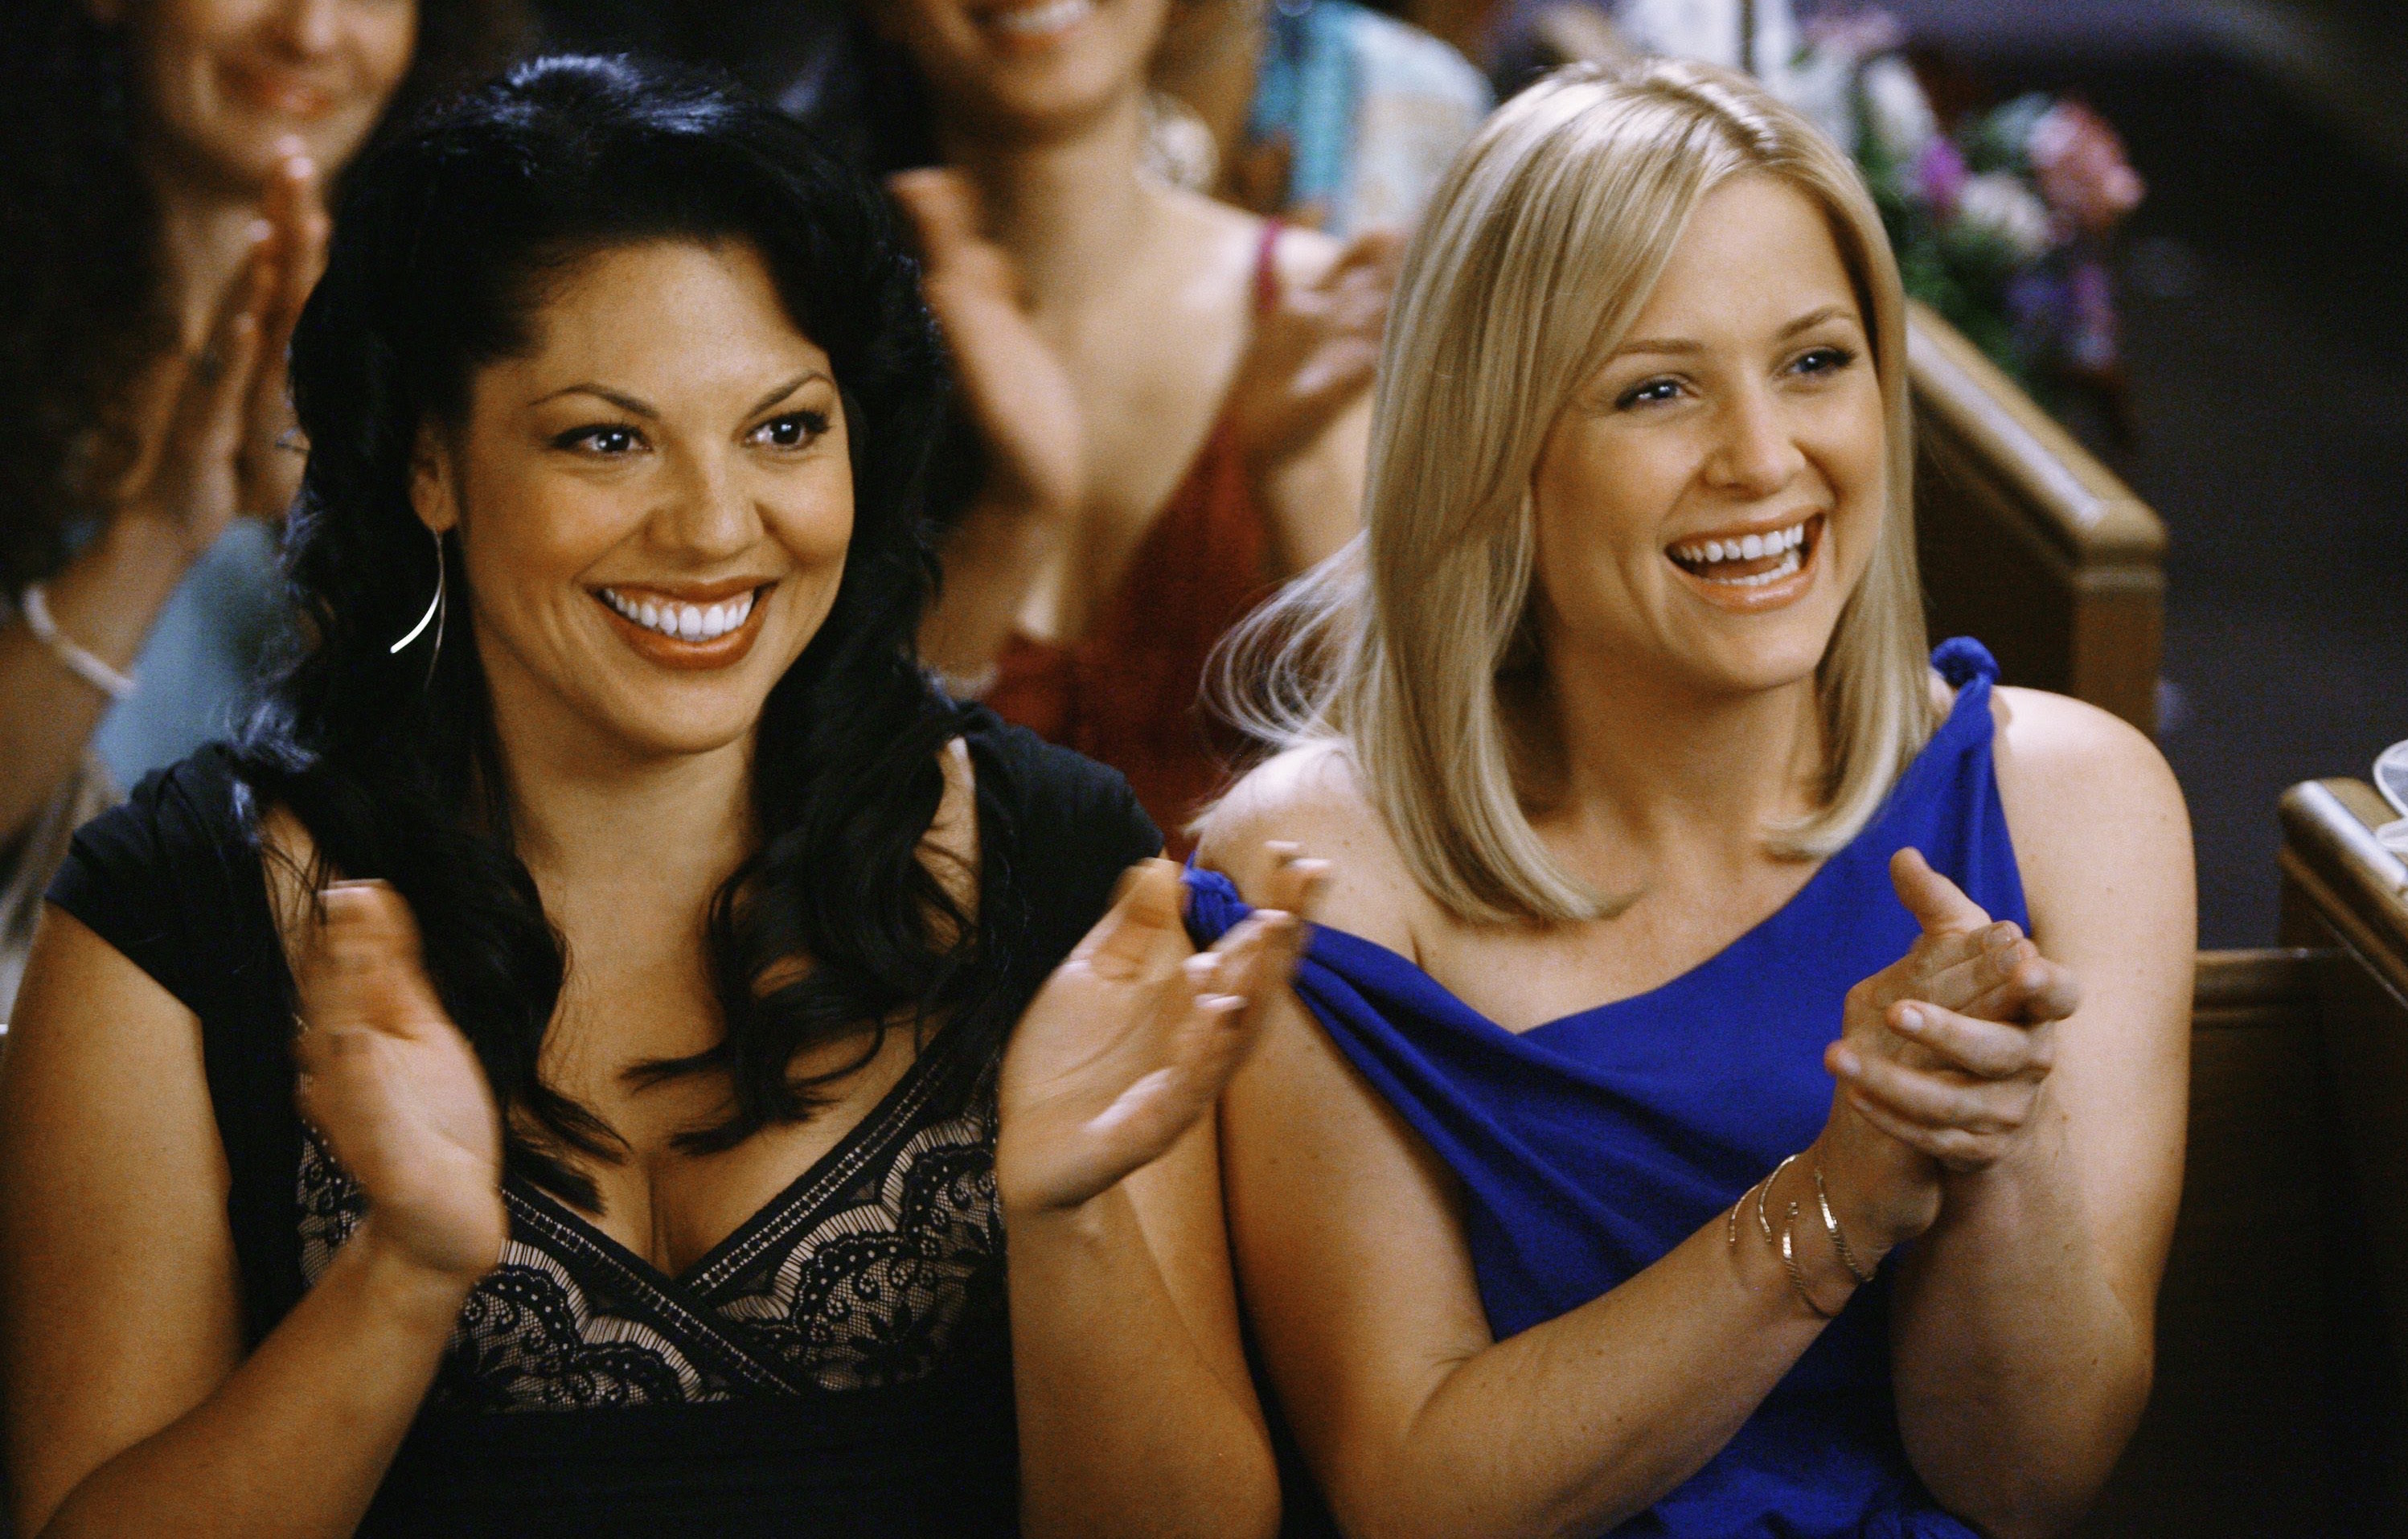 callie and arizona first meet